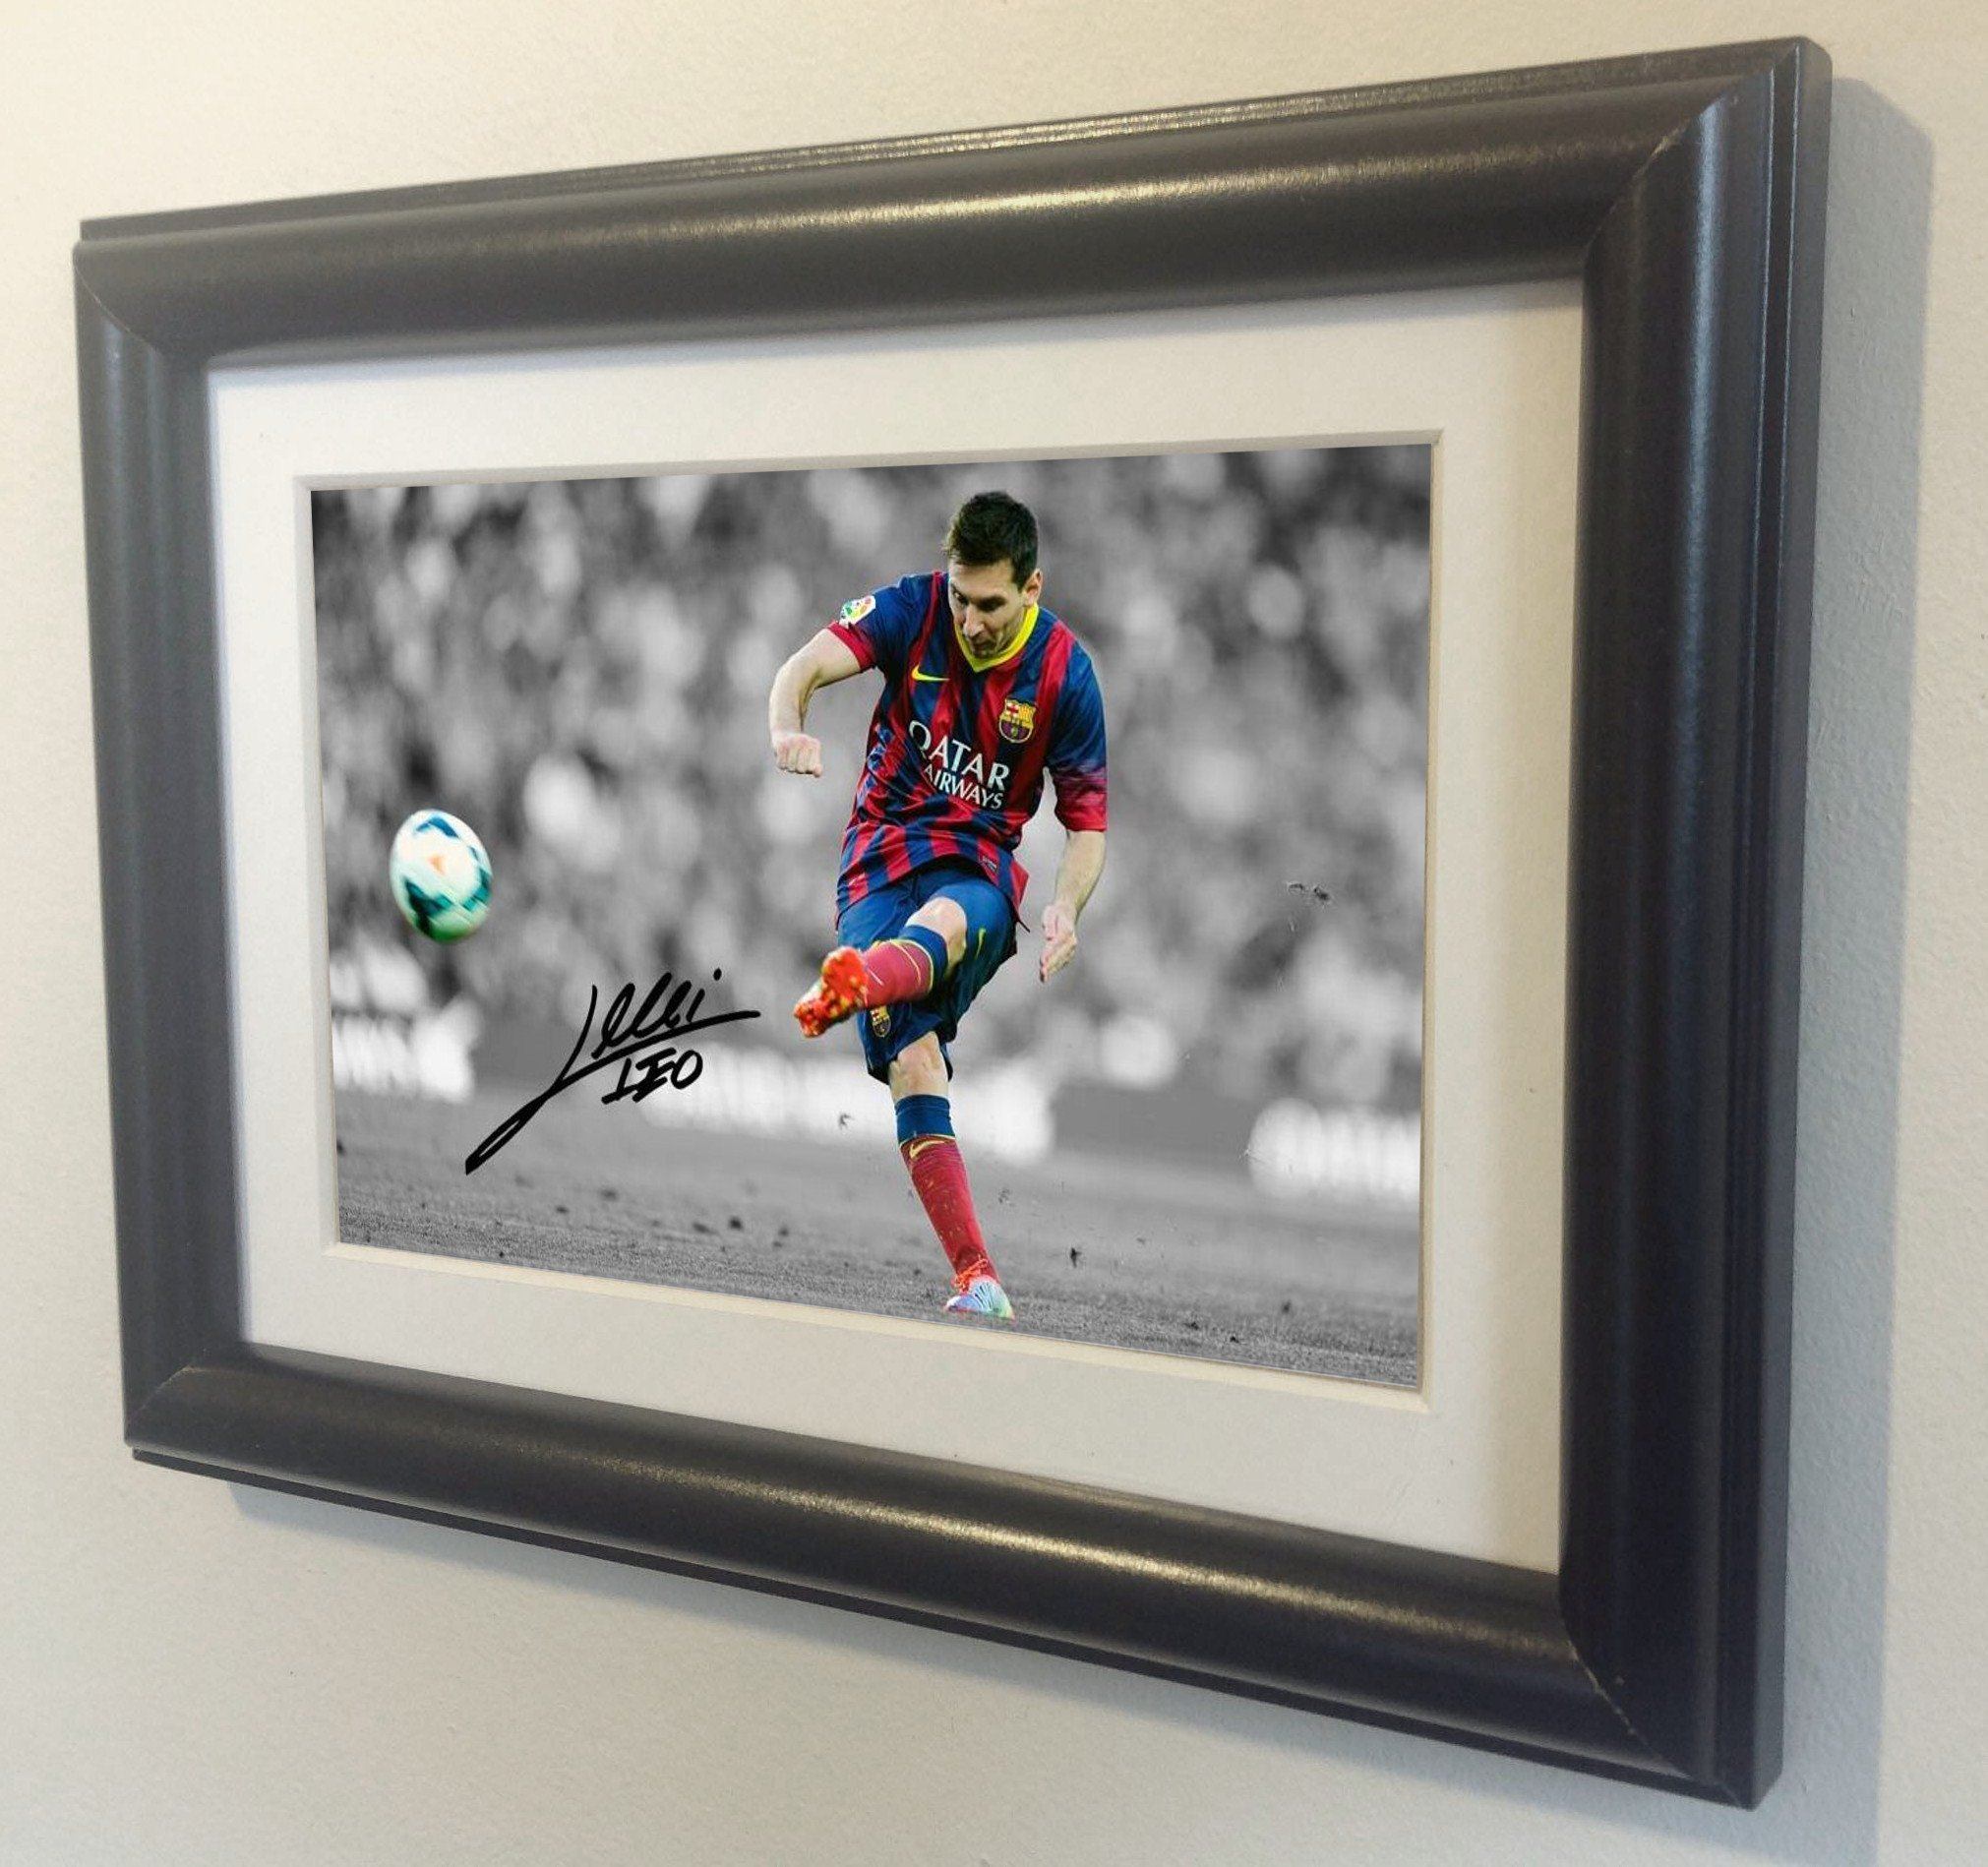 kicks Signed Black Soccer The Free Lionel Messi Barcelona Autographed Photo Photograph Picture Frame Gift SM